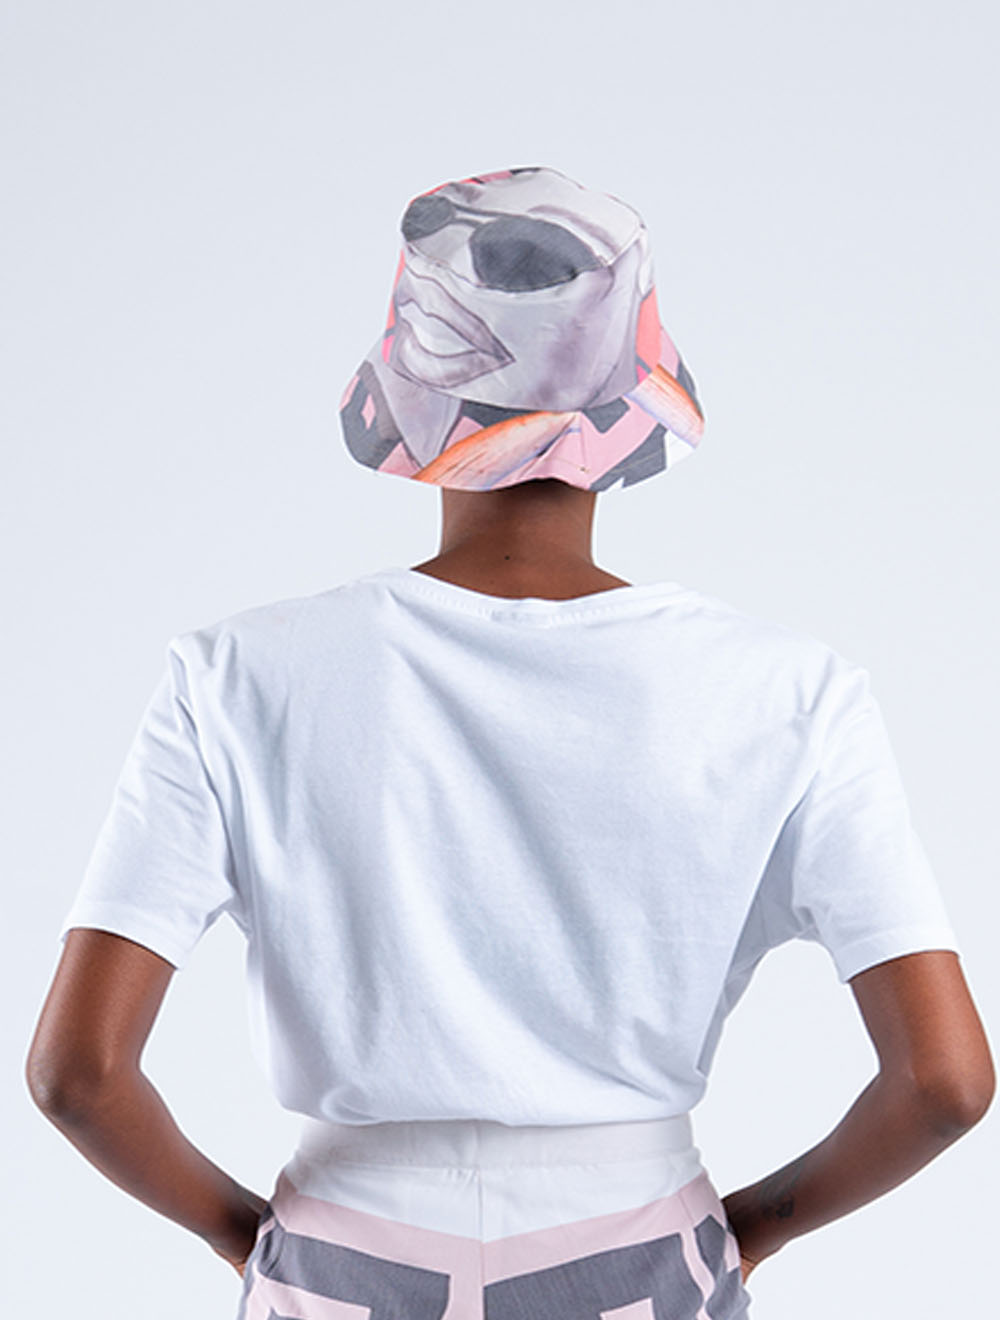 Busi Mhlongo Bucket head – Back